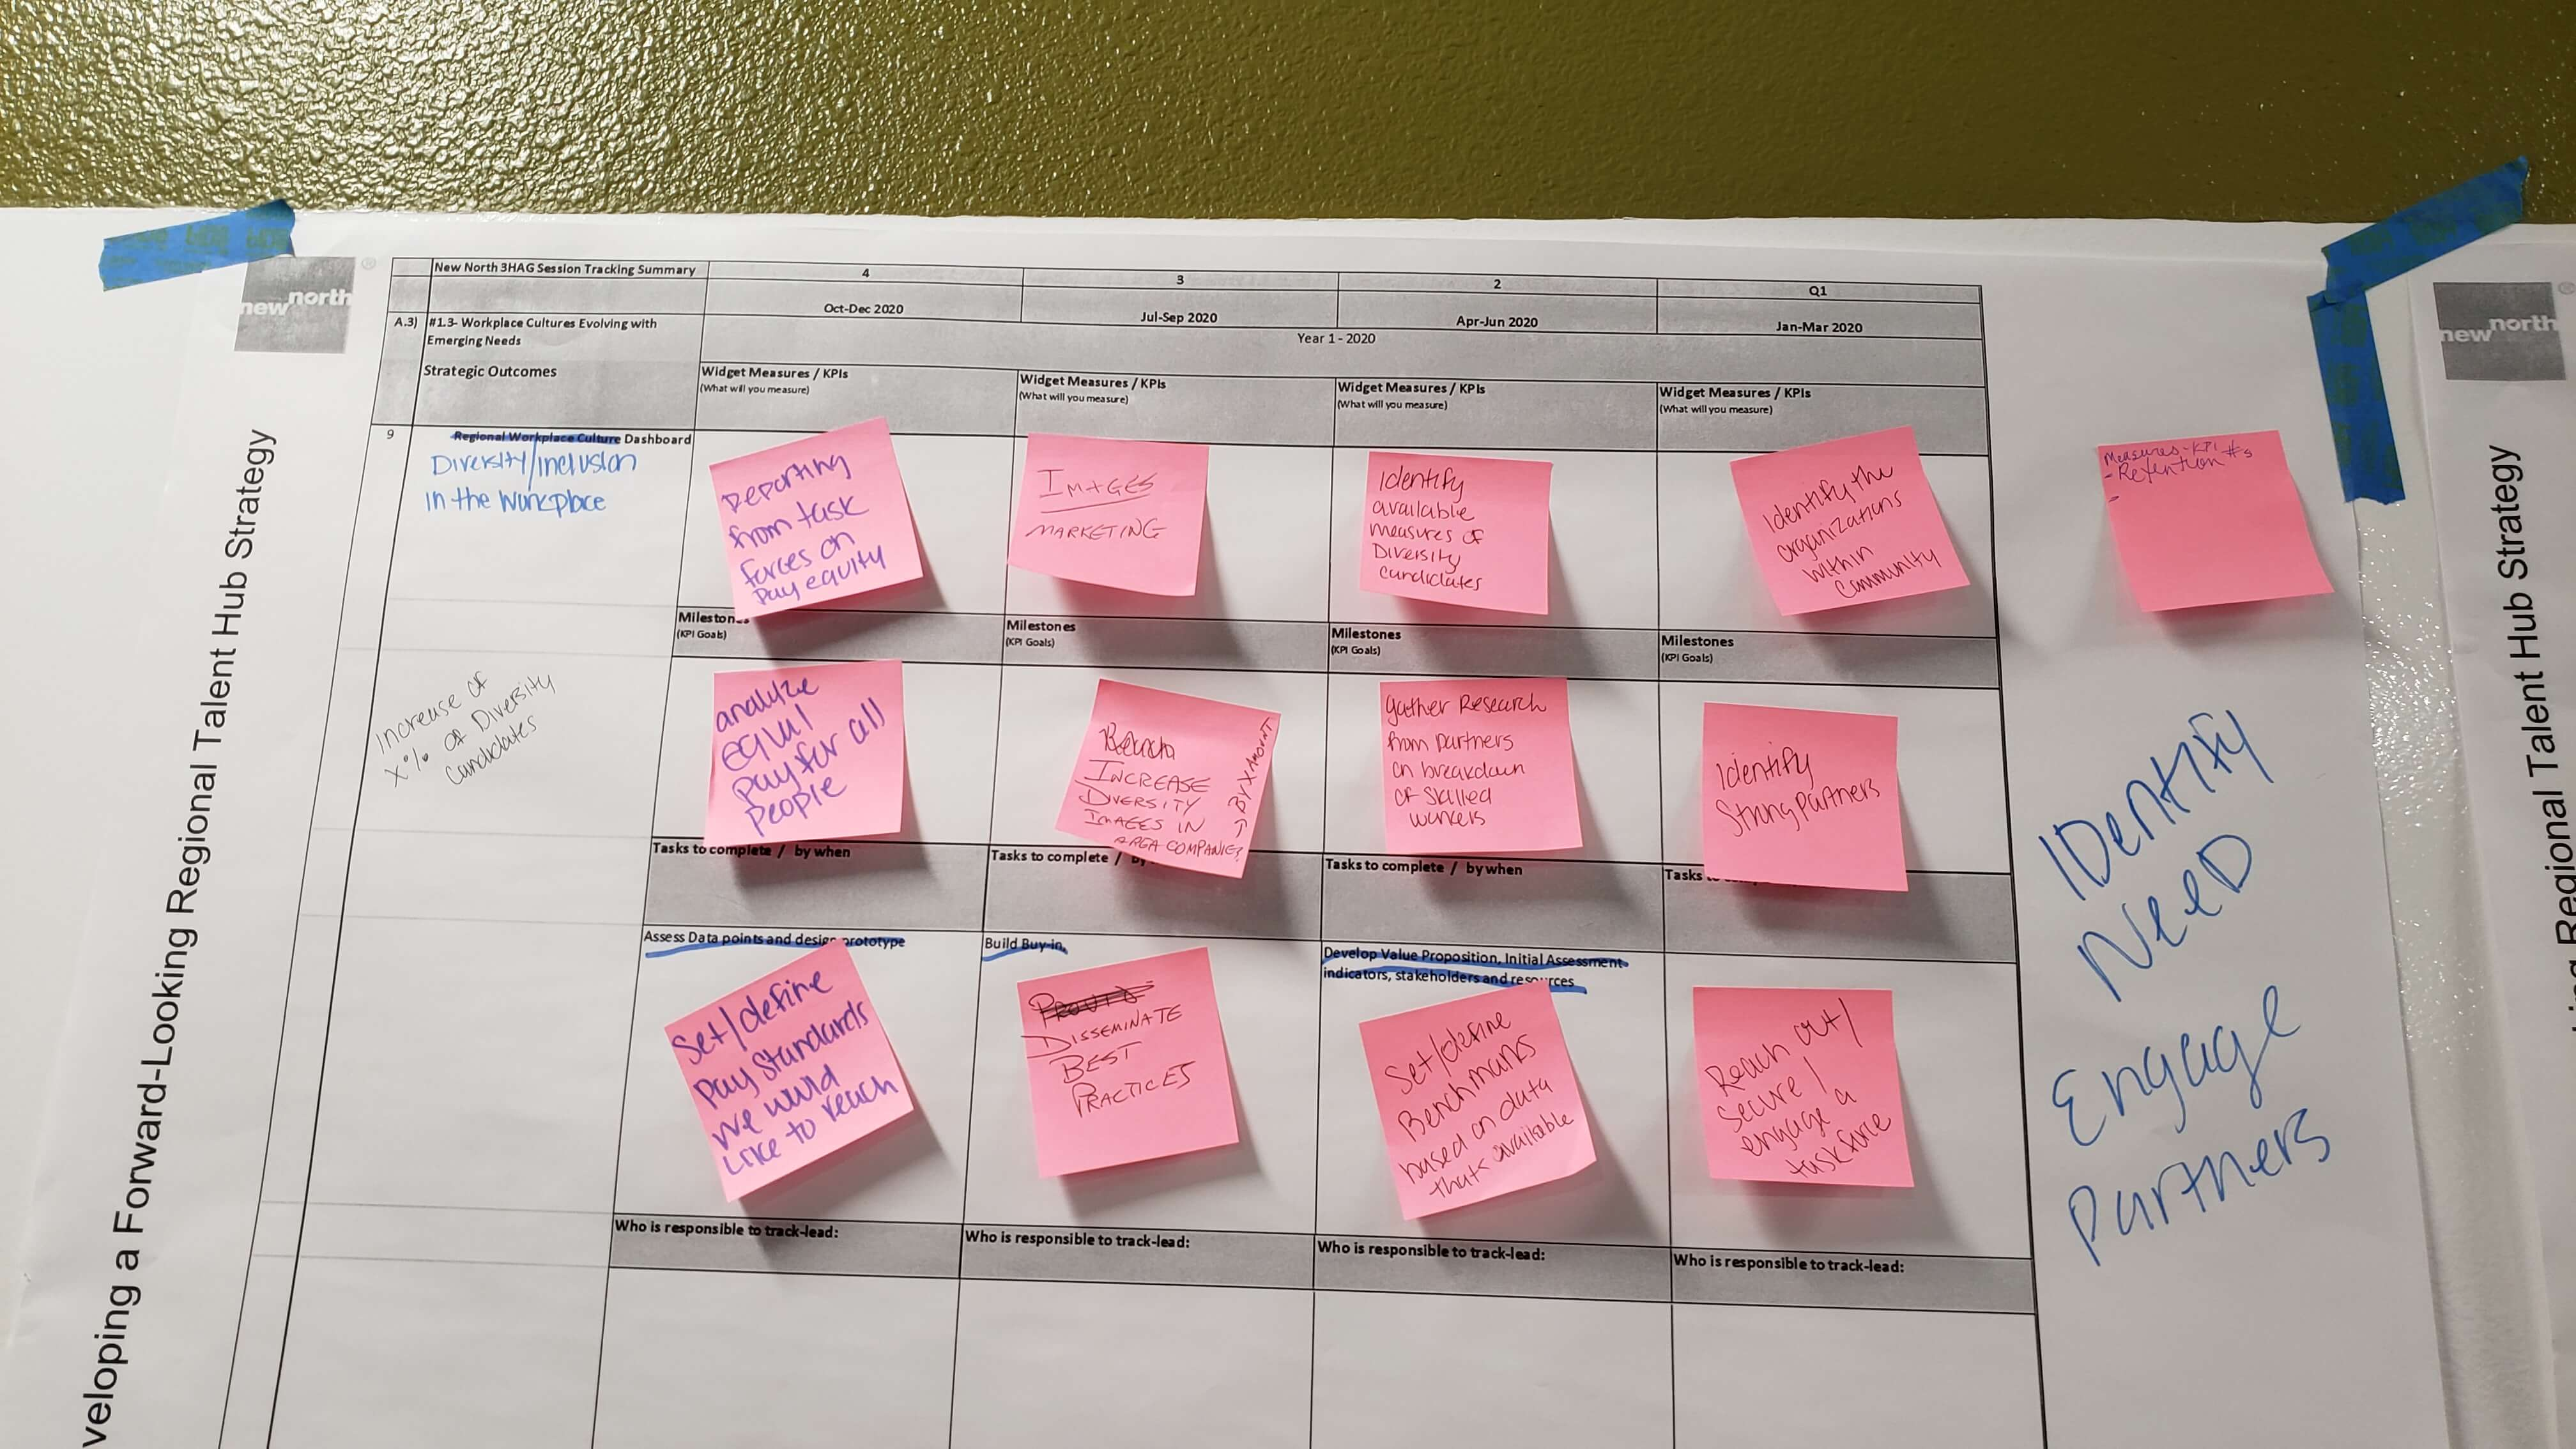 Whiteboard with pink sticky notes in three rows